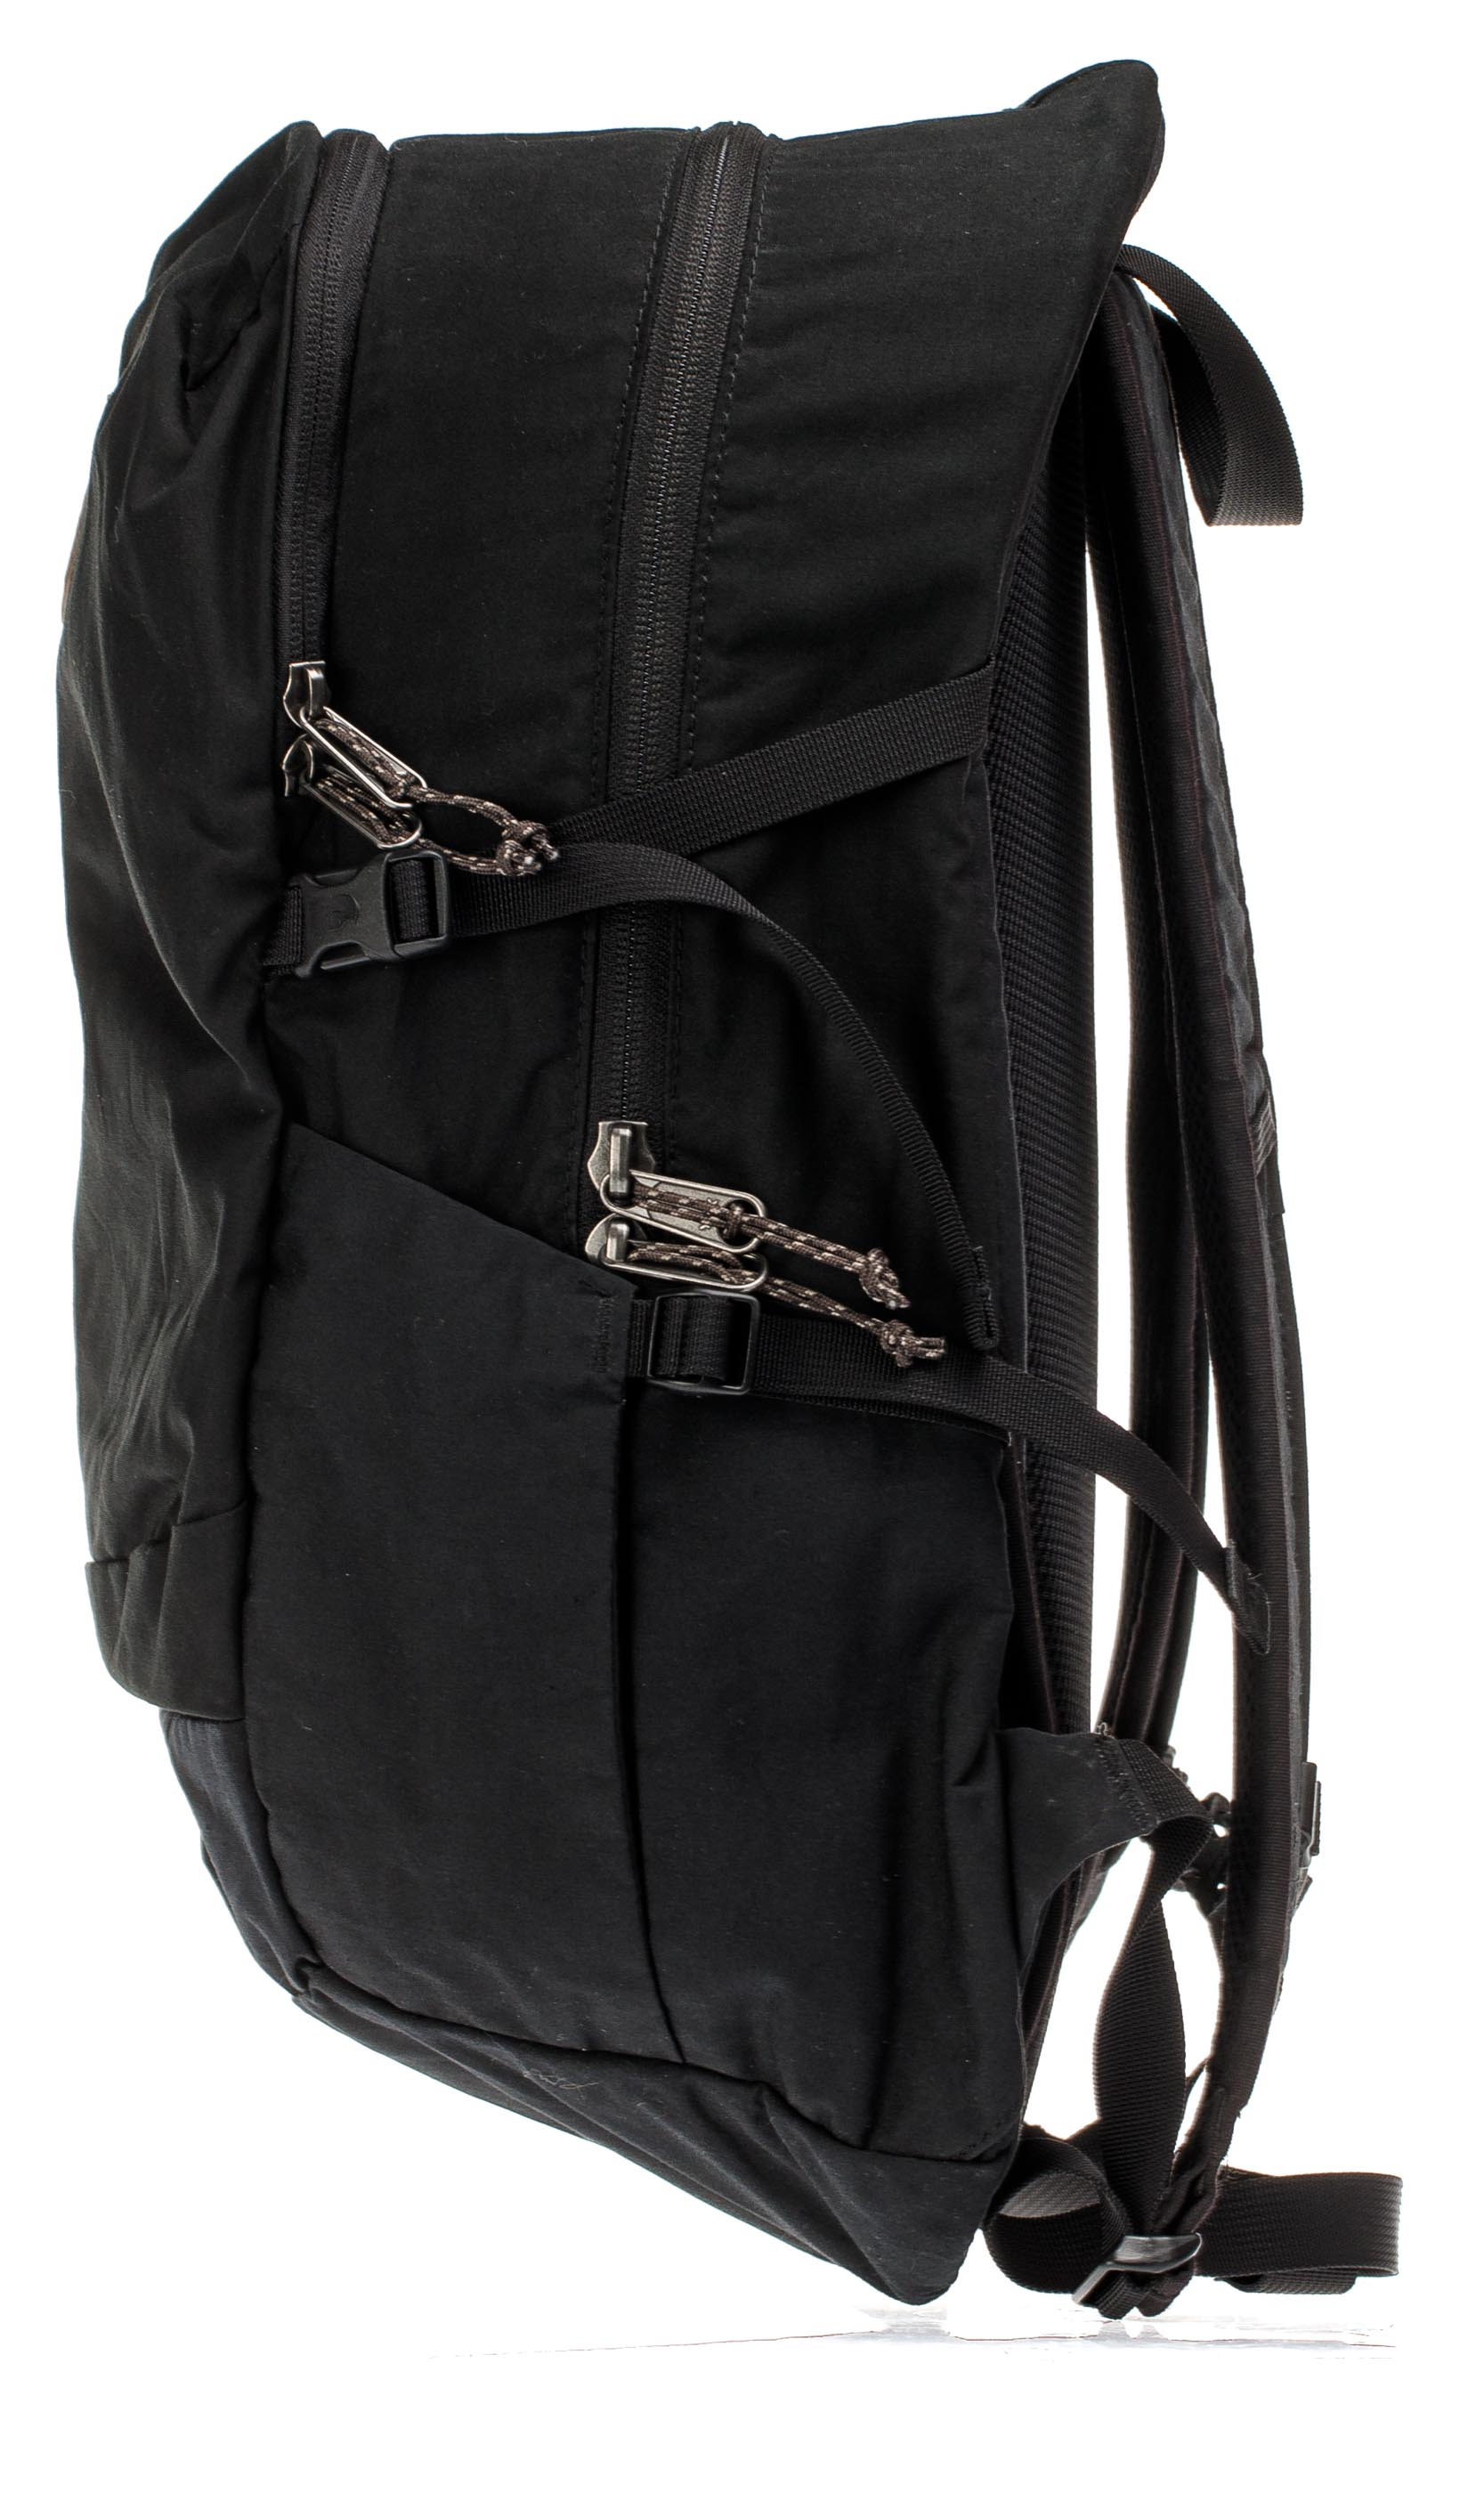 Рюкзак Fjallraven High Coast Trail 26 Black - Фото 2 большая